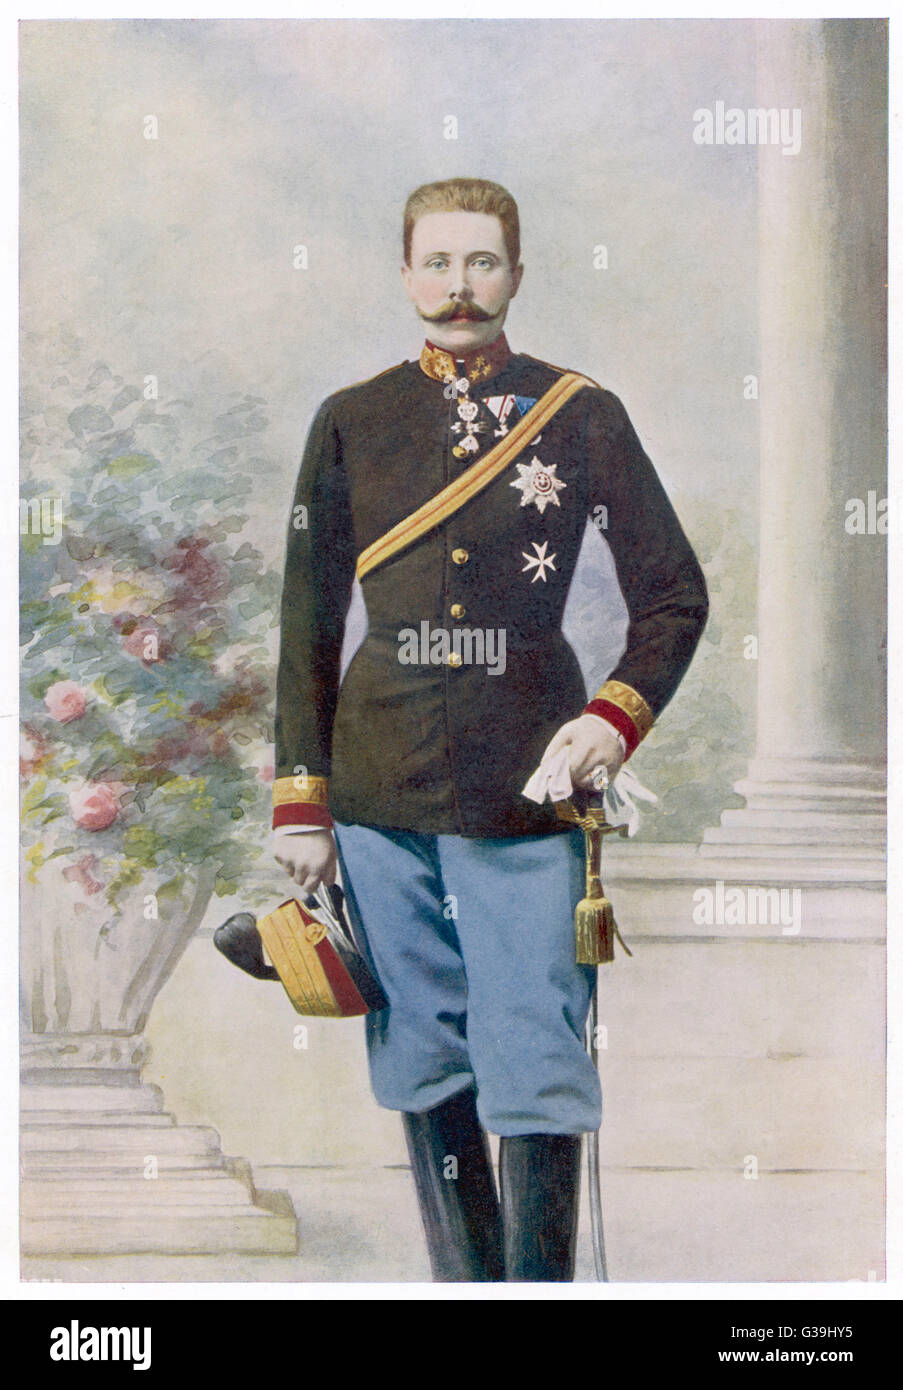 ARCHDUKE FRANZ FERDINAND  Heir to the Austrian empire,  nephew of Franz Joseph,  assassinated in 1914      Date: - Stock Image